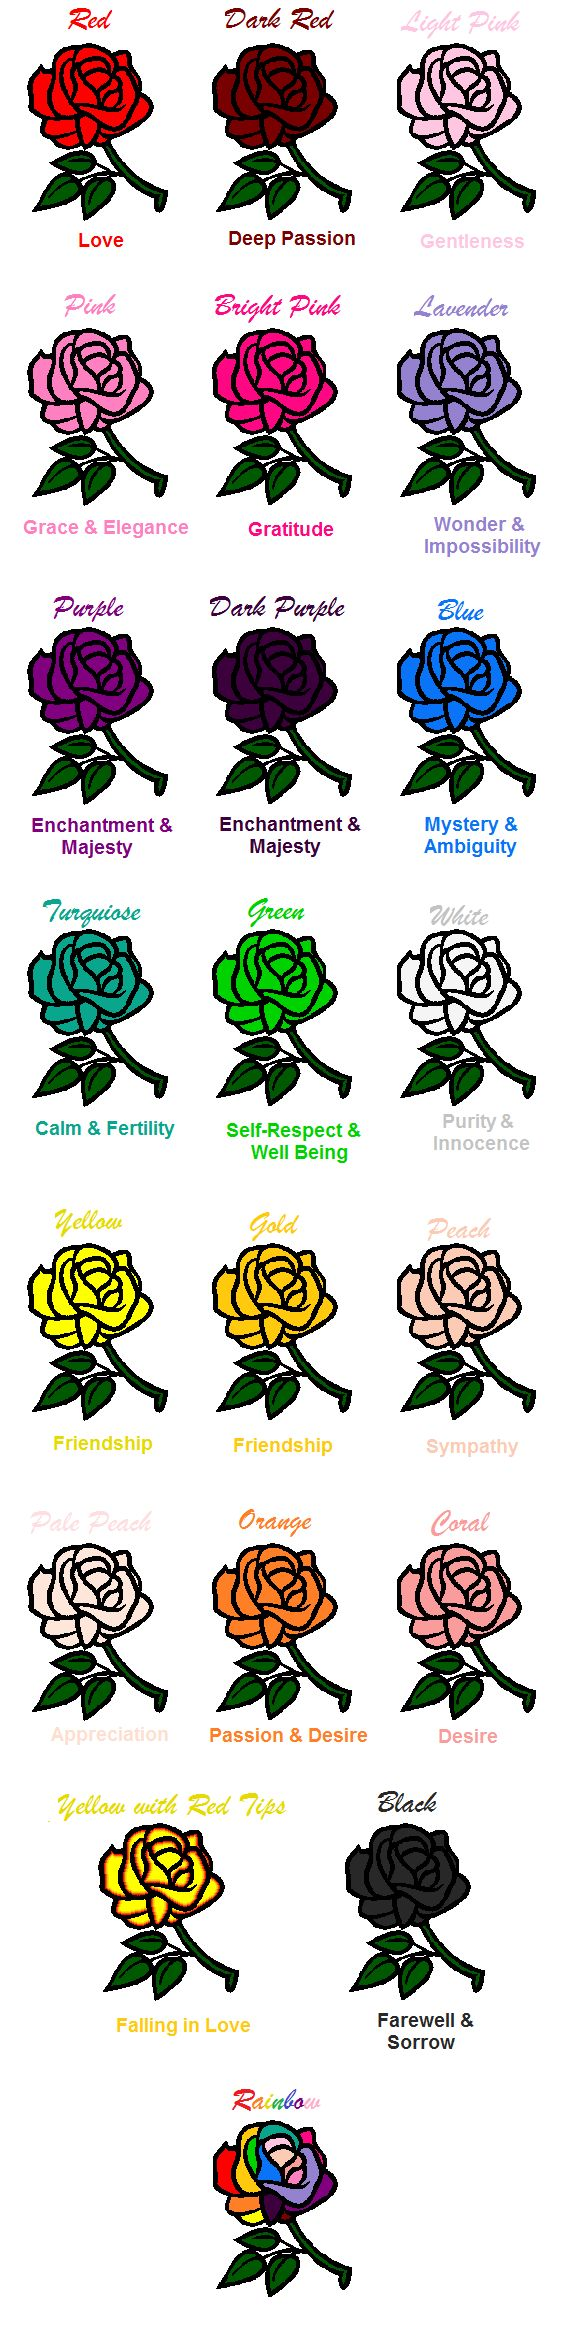 best 25 rose color meanings ideas on pinterest yellow roses